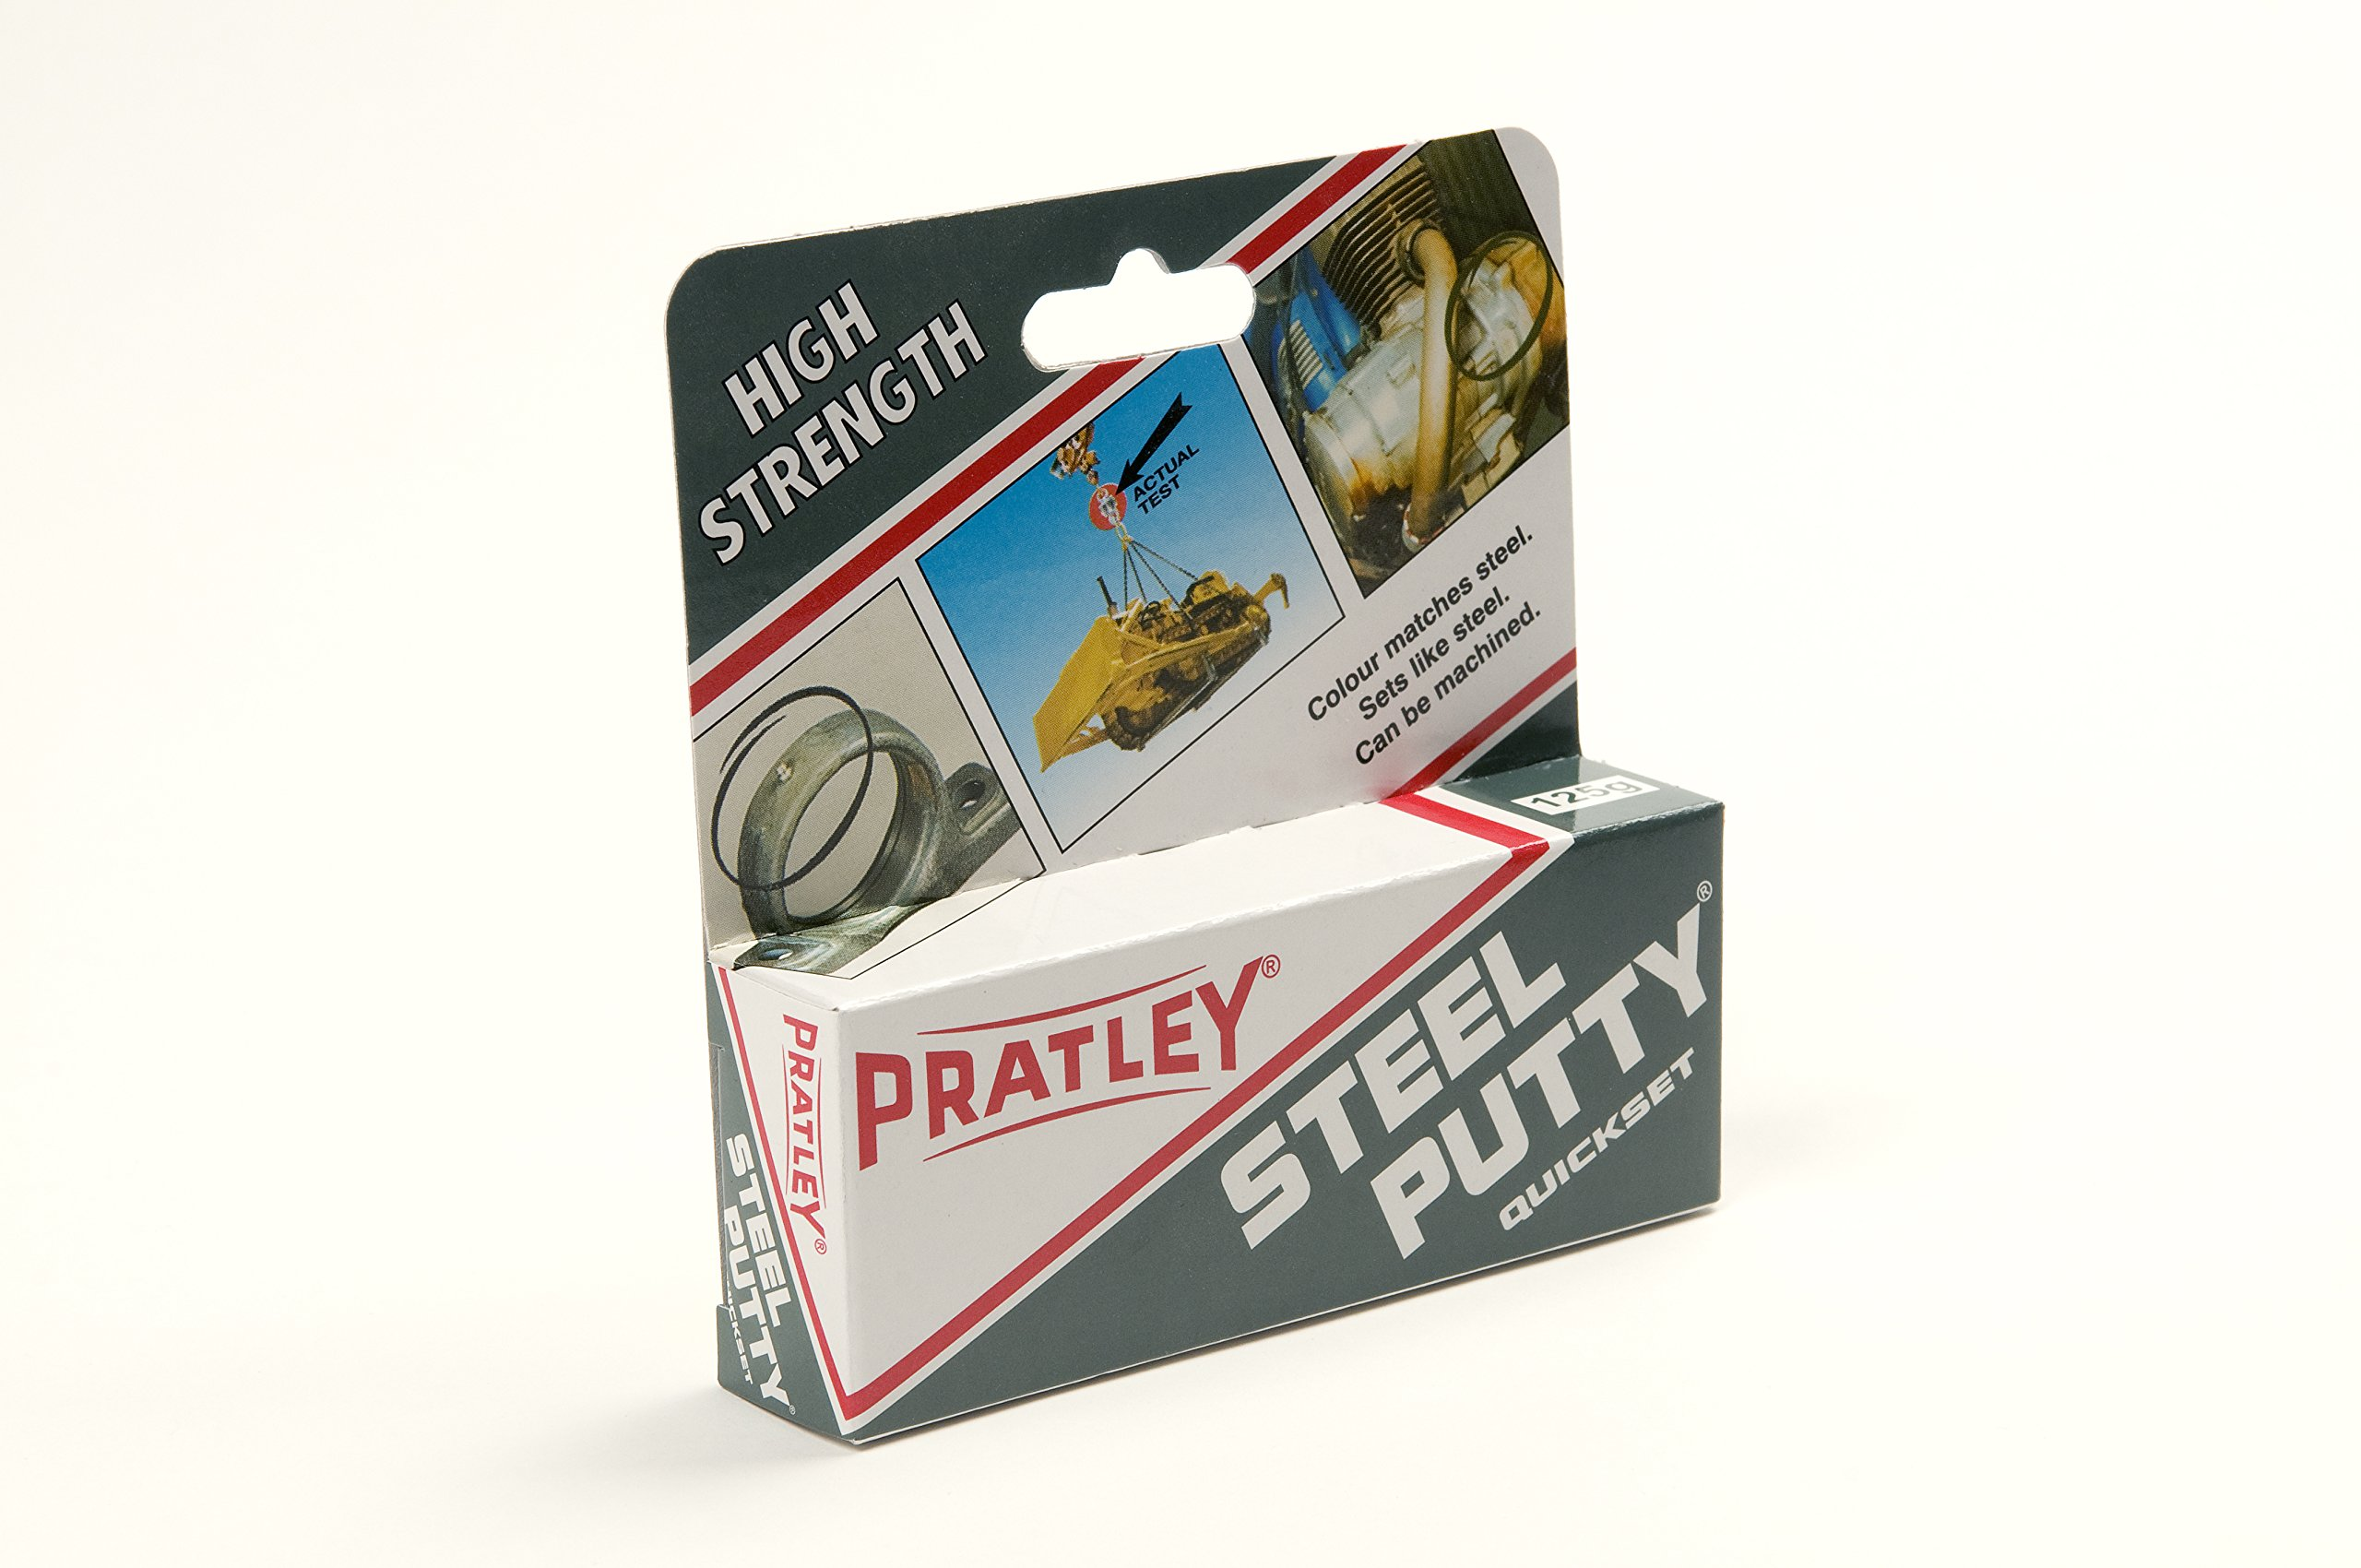 1 x Pratley Steel Metal Adhesive Epoxy Putty 125g / 4.4 ounces 84136 New